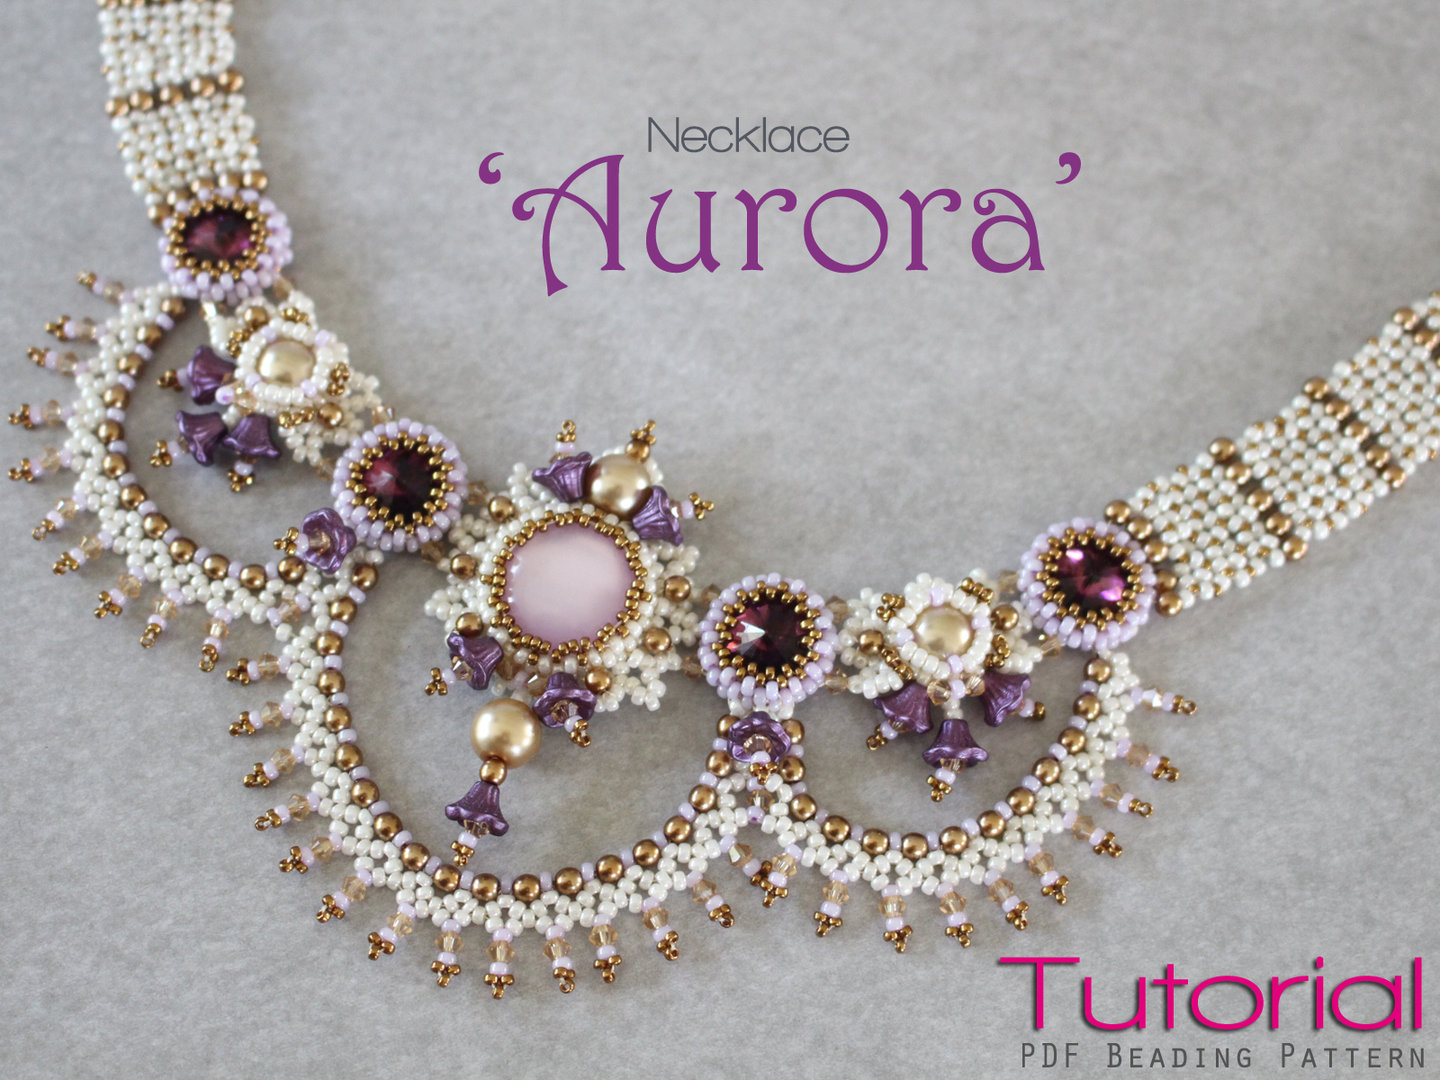 Beading pattern for necklace 'Aurora'